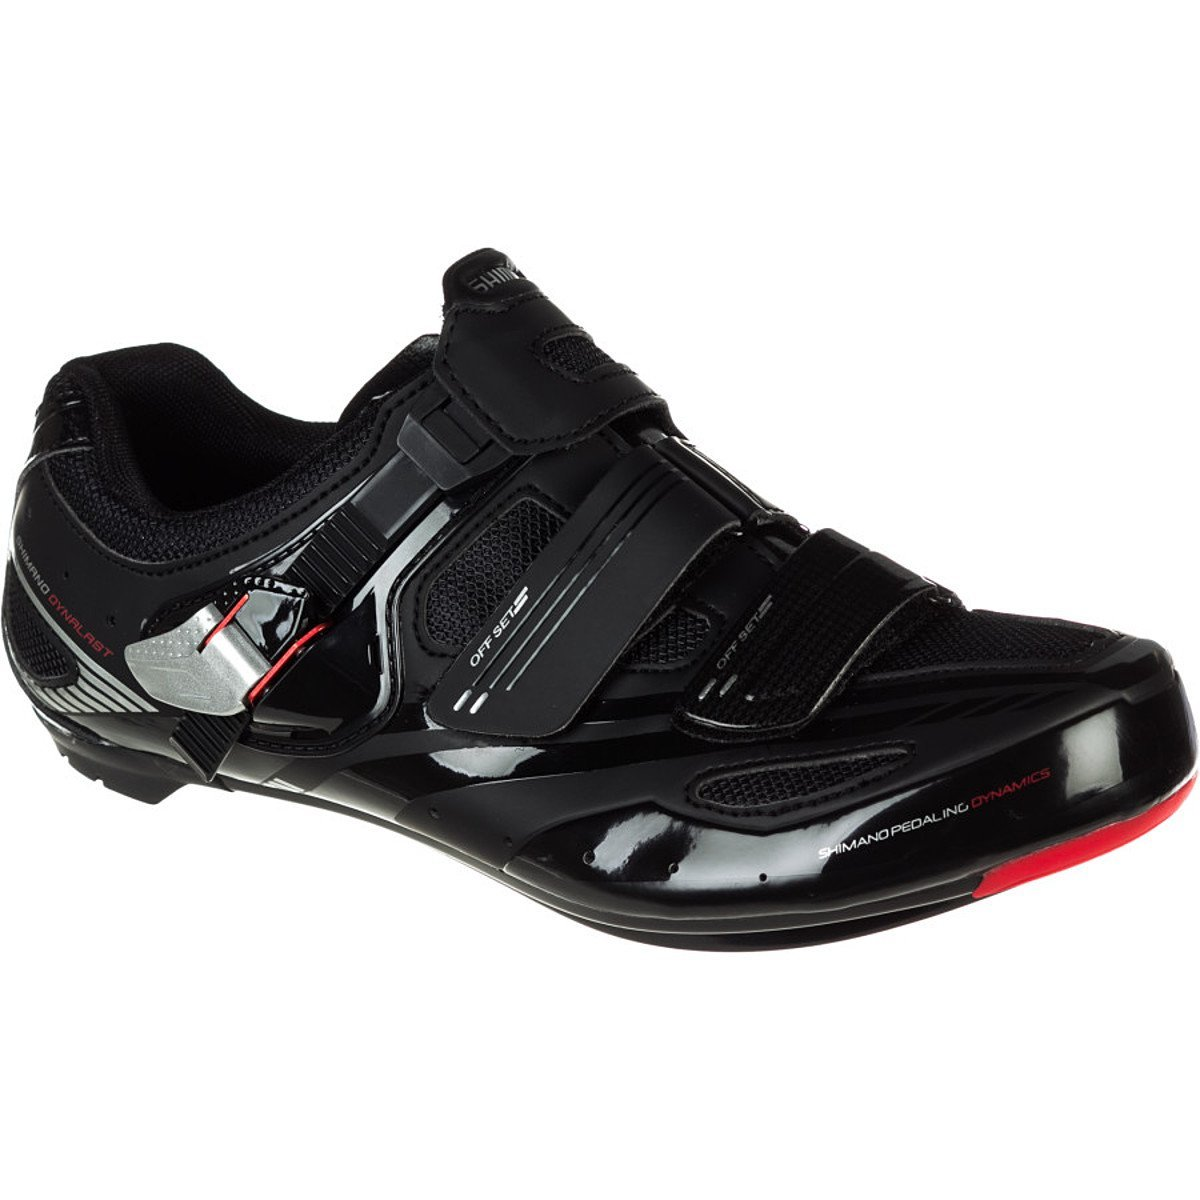 Shimano Men's SH-R107LL Pro Tour Road Bike Shoes